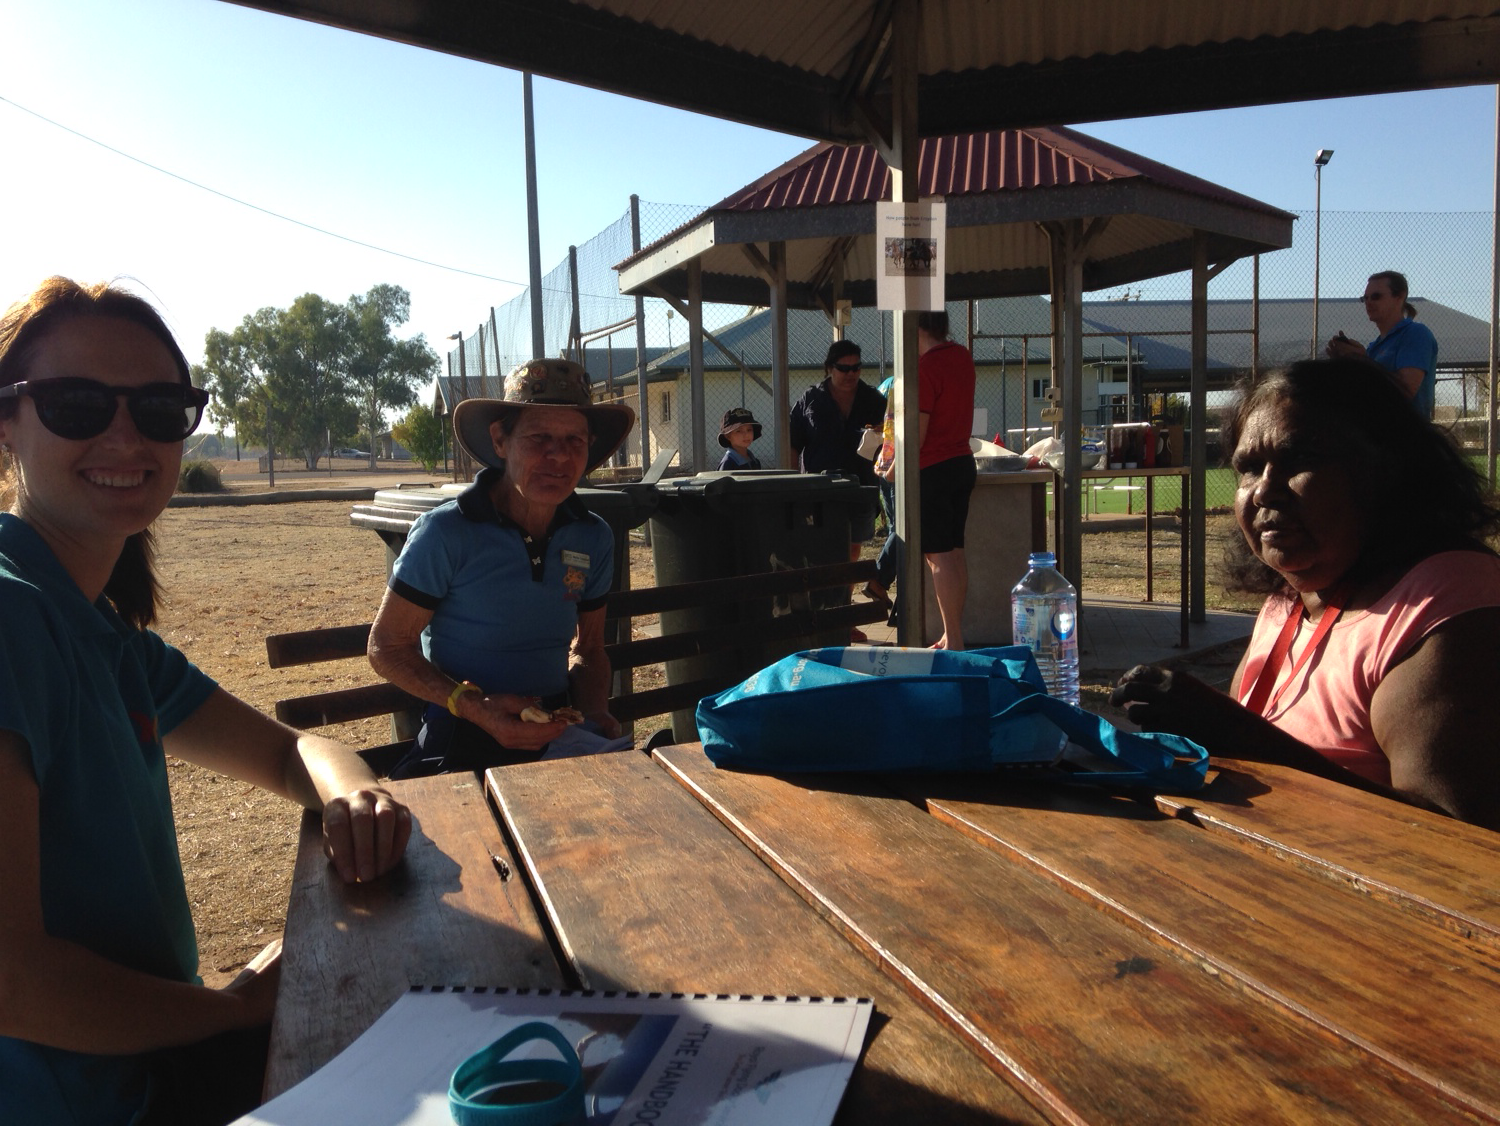 Chatting to locals at the Croydon community breakfast.